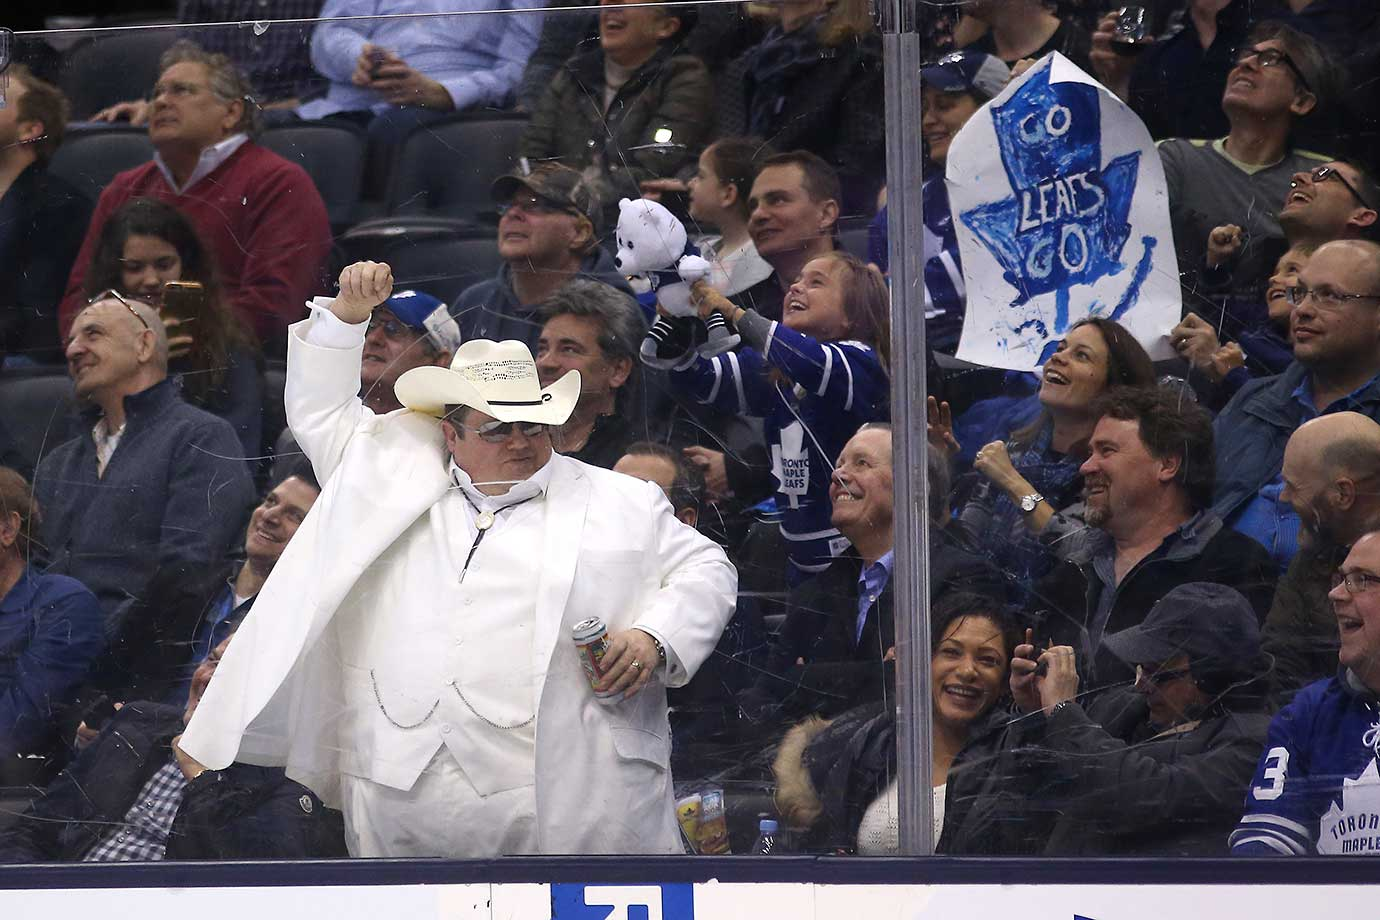 A fan dress like Bogg Hog from the Dukes of Hazard tries to get the Leafs fans going as Toronto played  Detroit.